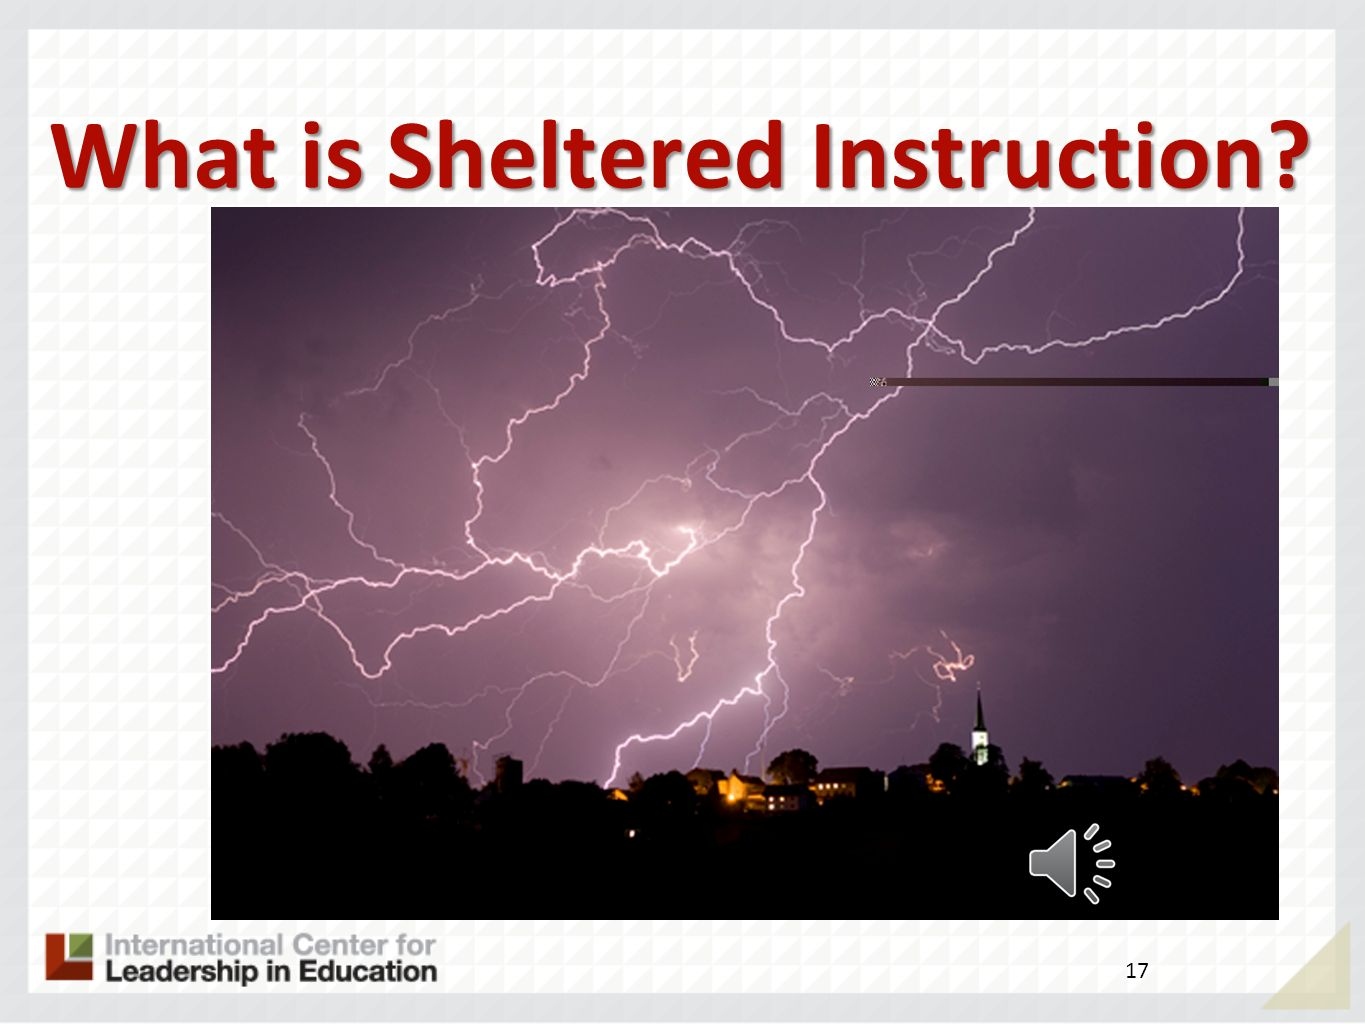 What is Sheltered Instruction